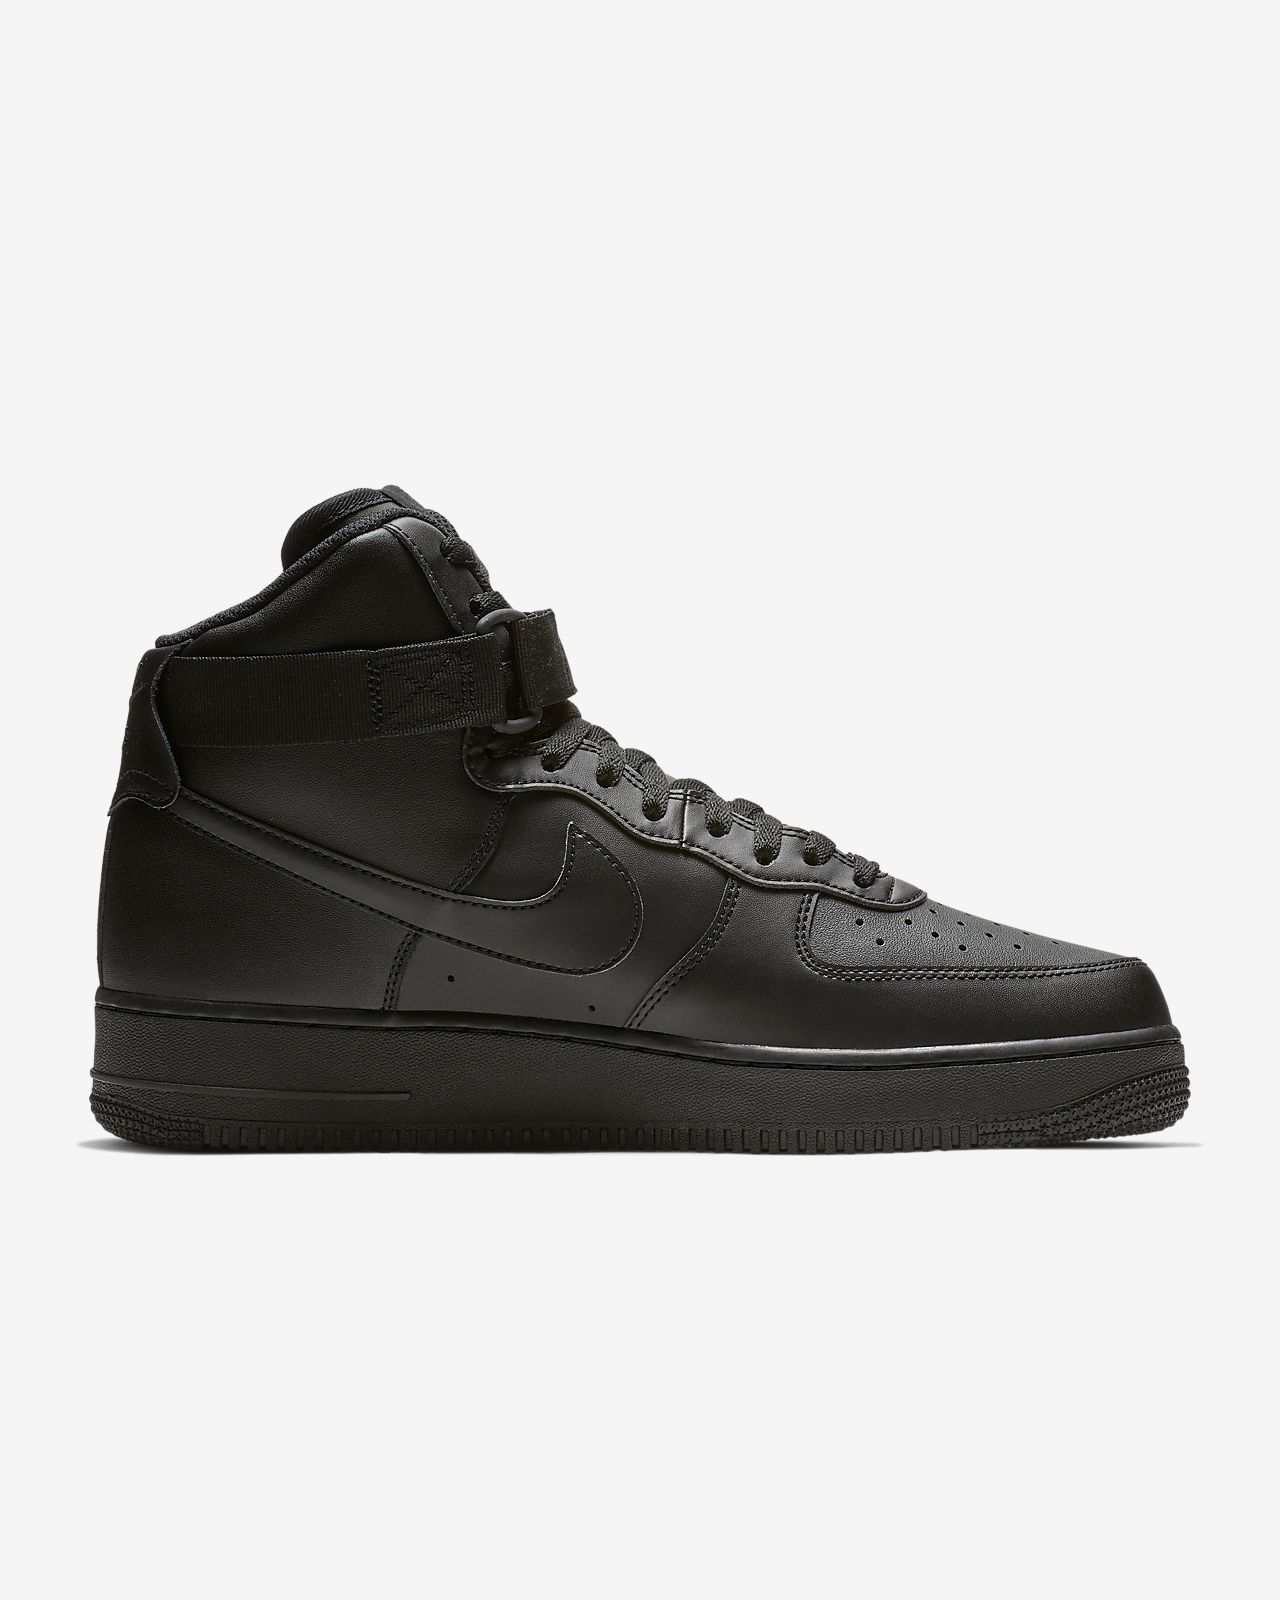 meilleur service d385c 08603 Nike Air Force 1 High 07 Men's Shoe